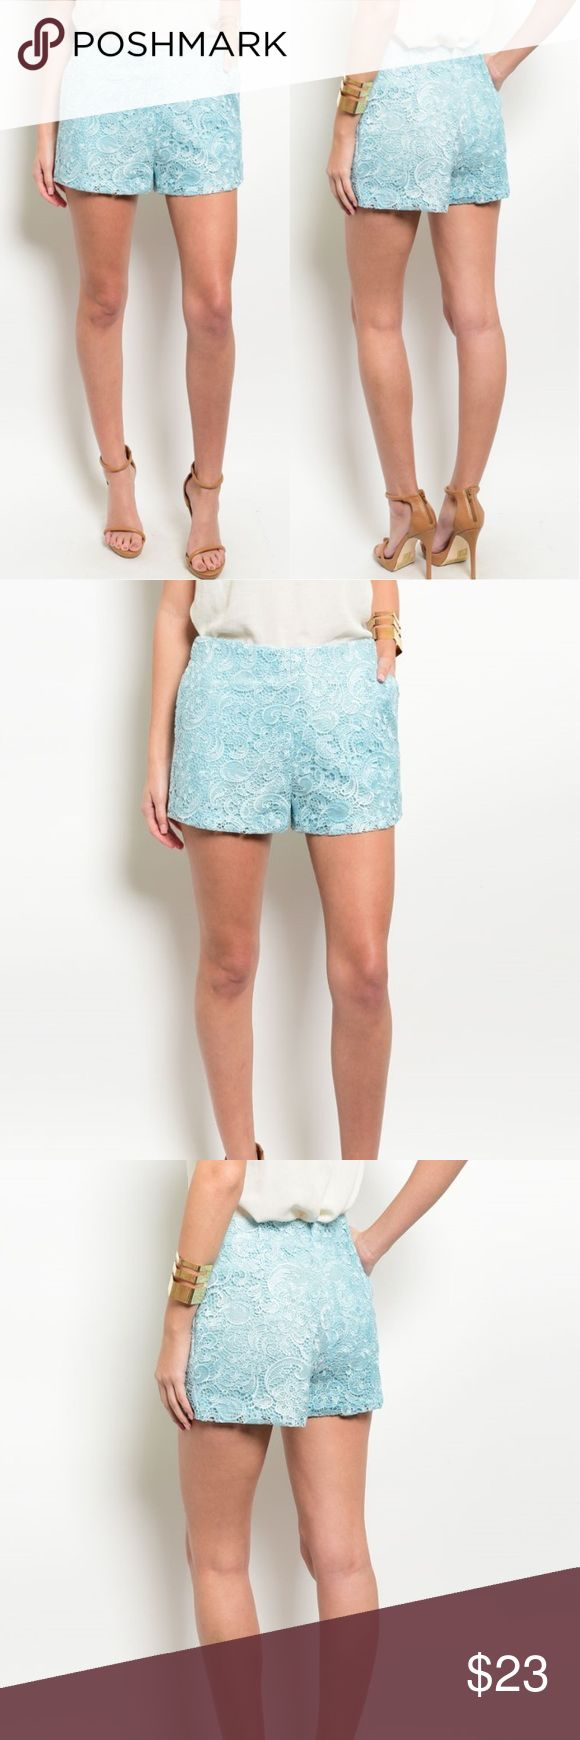 Coming Soon 🌸 Aqua Paisley Lace Shorts Price firm. Beautiful paisley lace. Great for every occasion.  Measurements coming soon. S, M, L will be available.  100% Polyester  🌸  Look closely at the photos to know what exactly you are receiving and the condition that it's in!  Smoke/Pet free home. Bundle 2+ of my items to save 15%.  I do not trade or hold items.  Check out my websites on my profile! Boutique Shorts